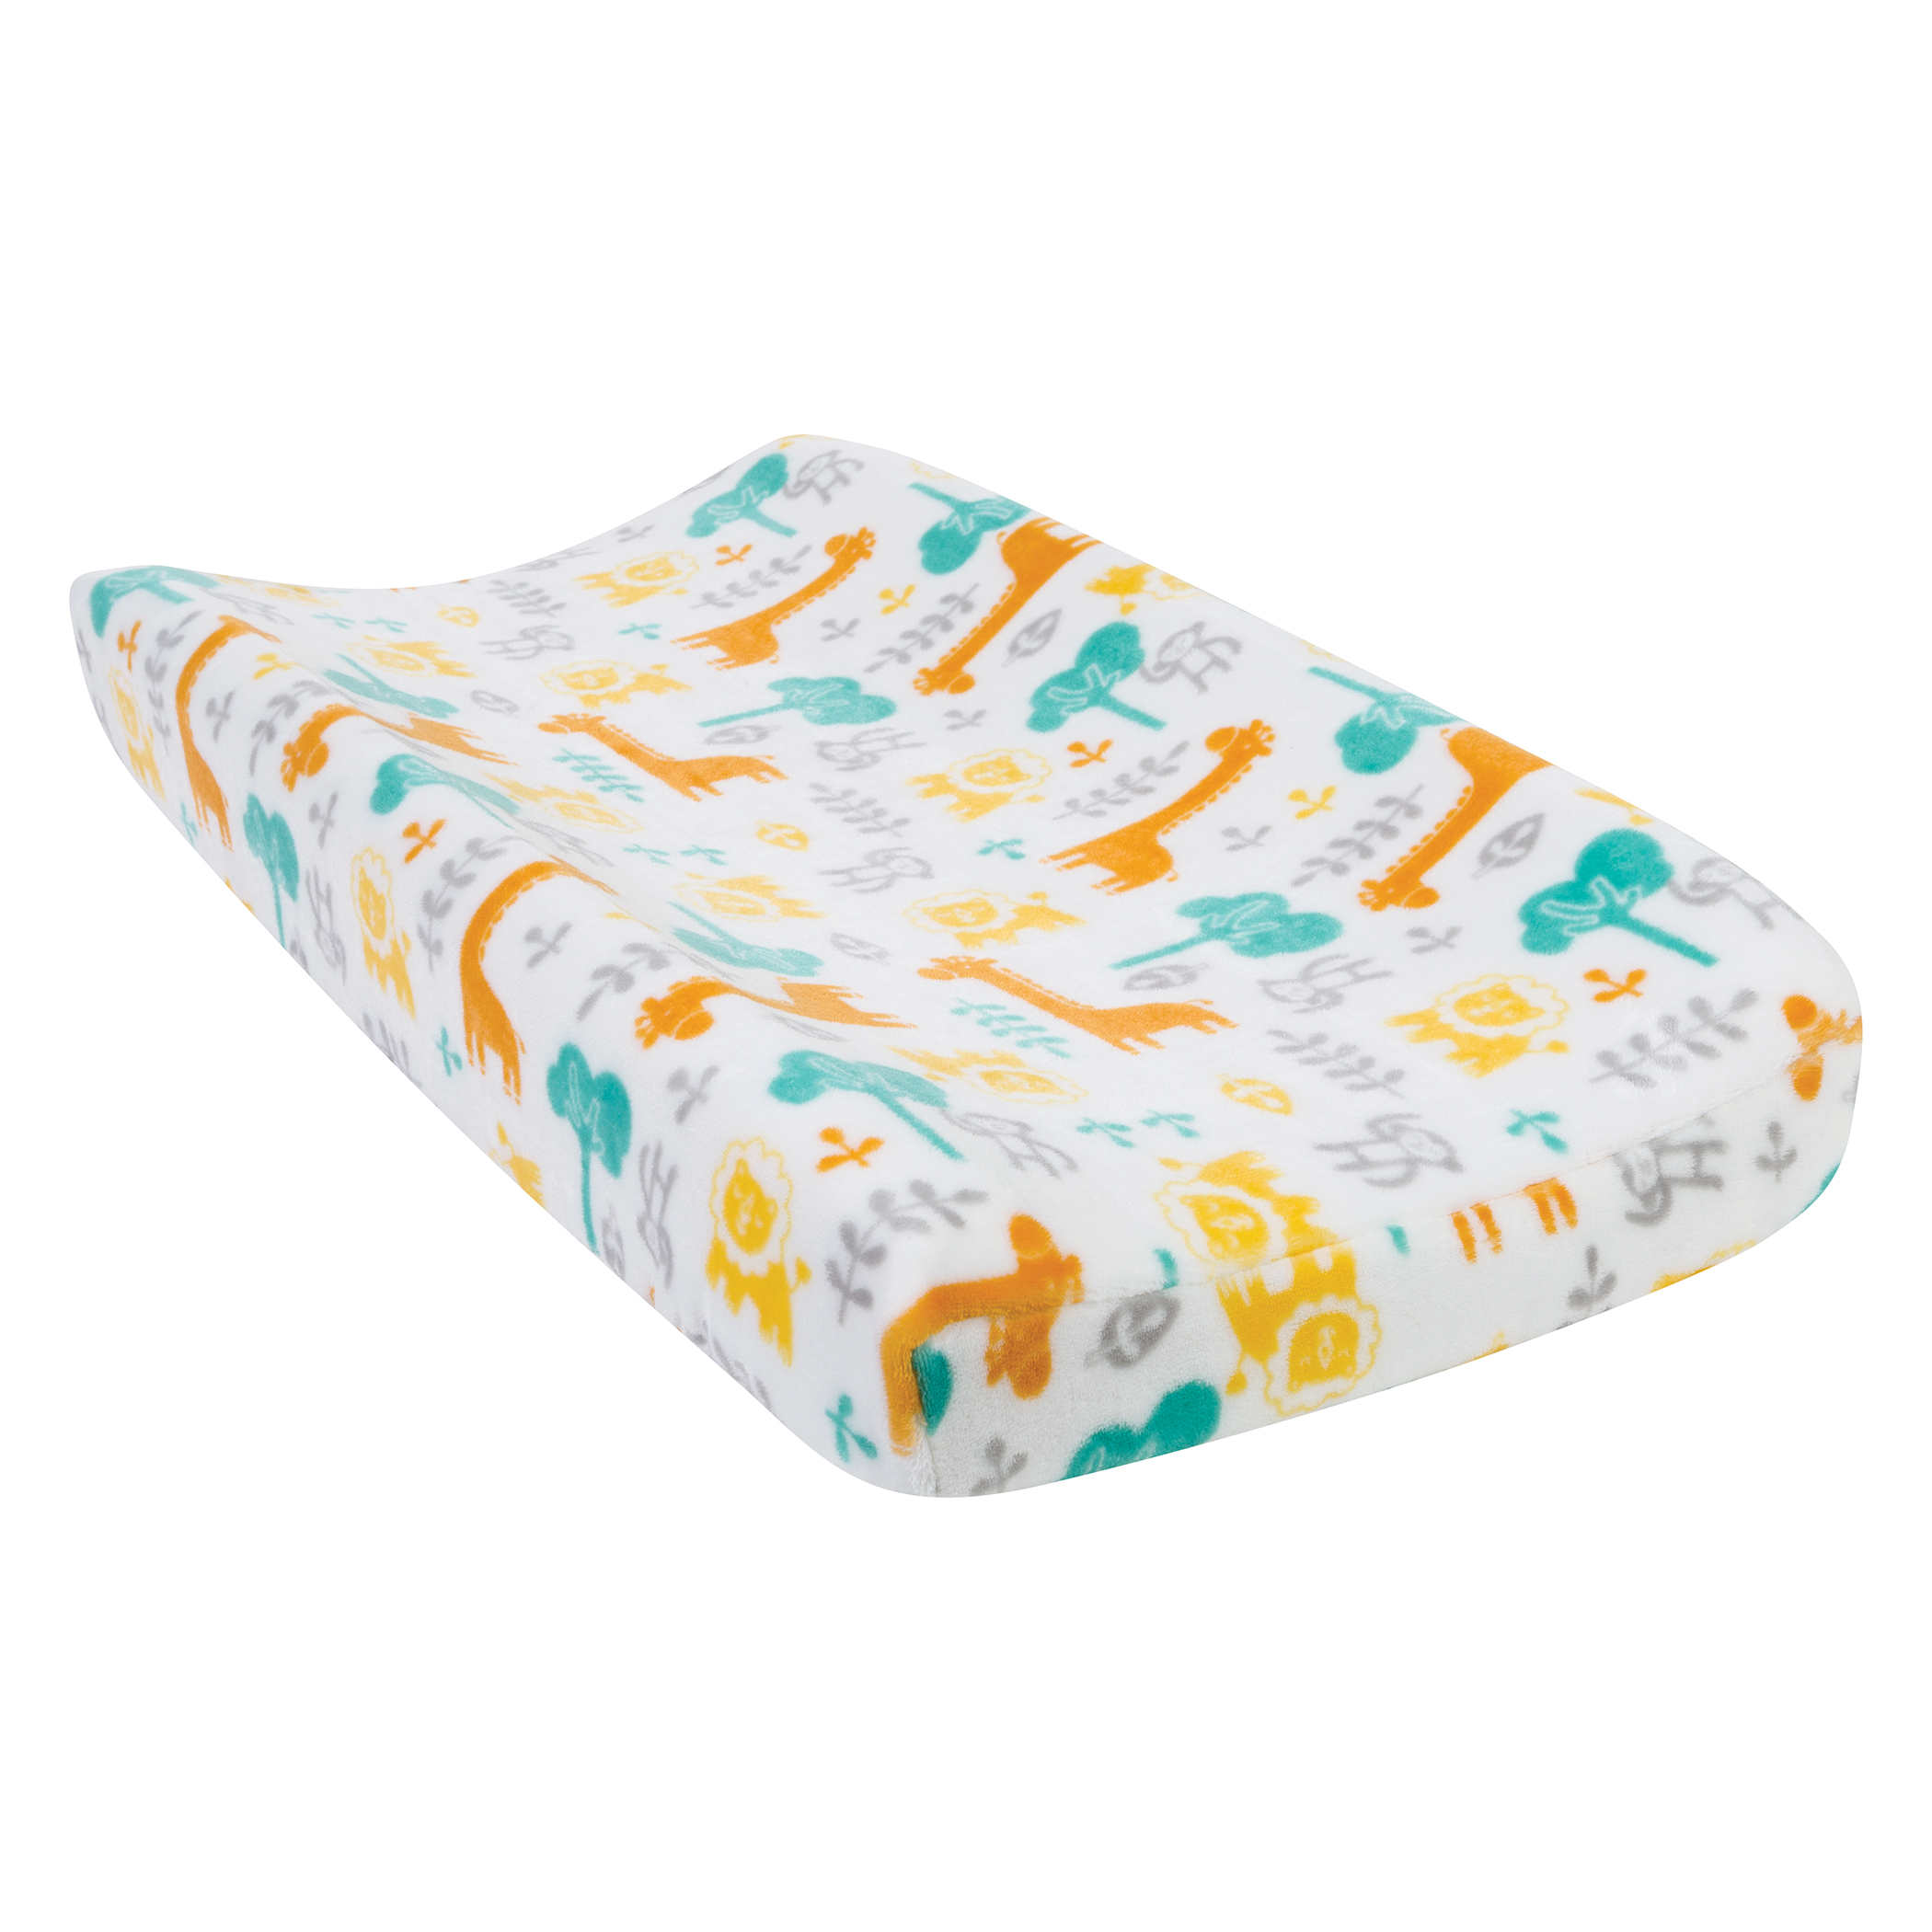 Lullaby Jungle Plush Changing Pad Cover